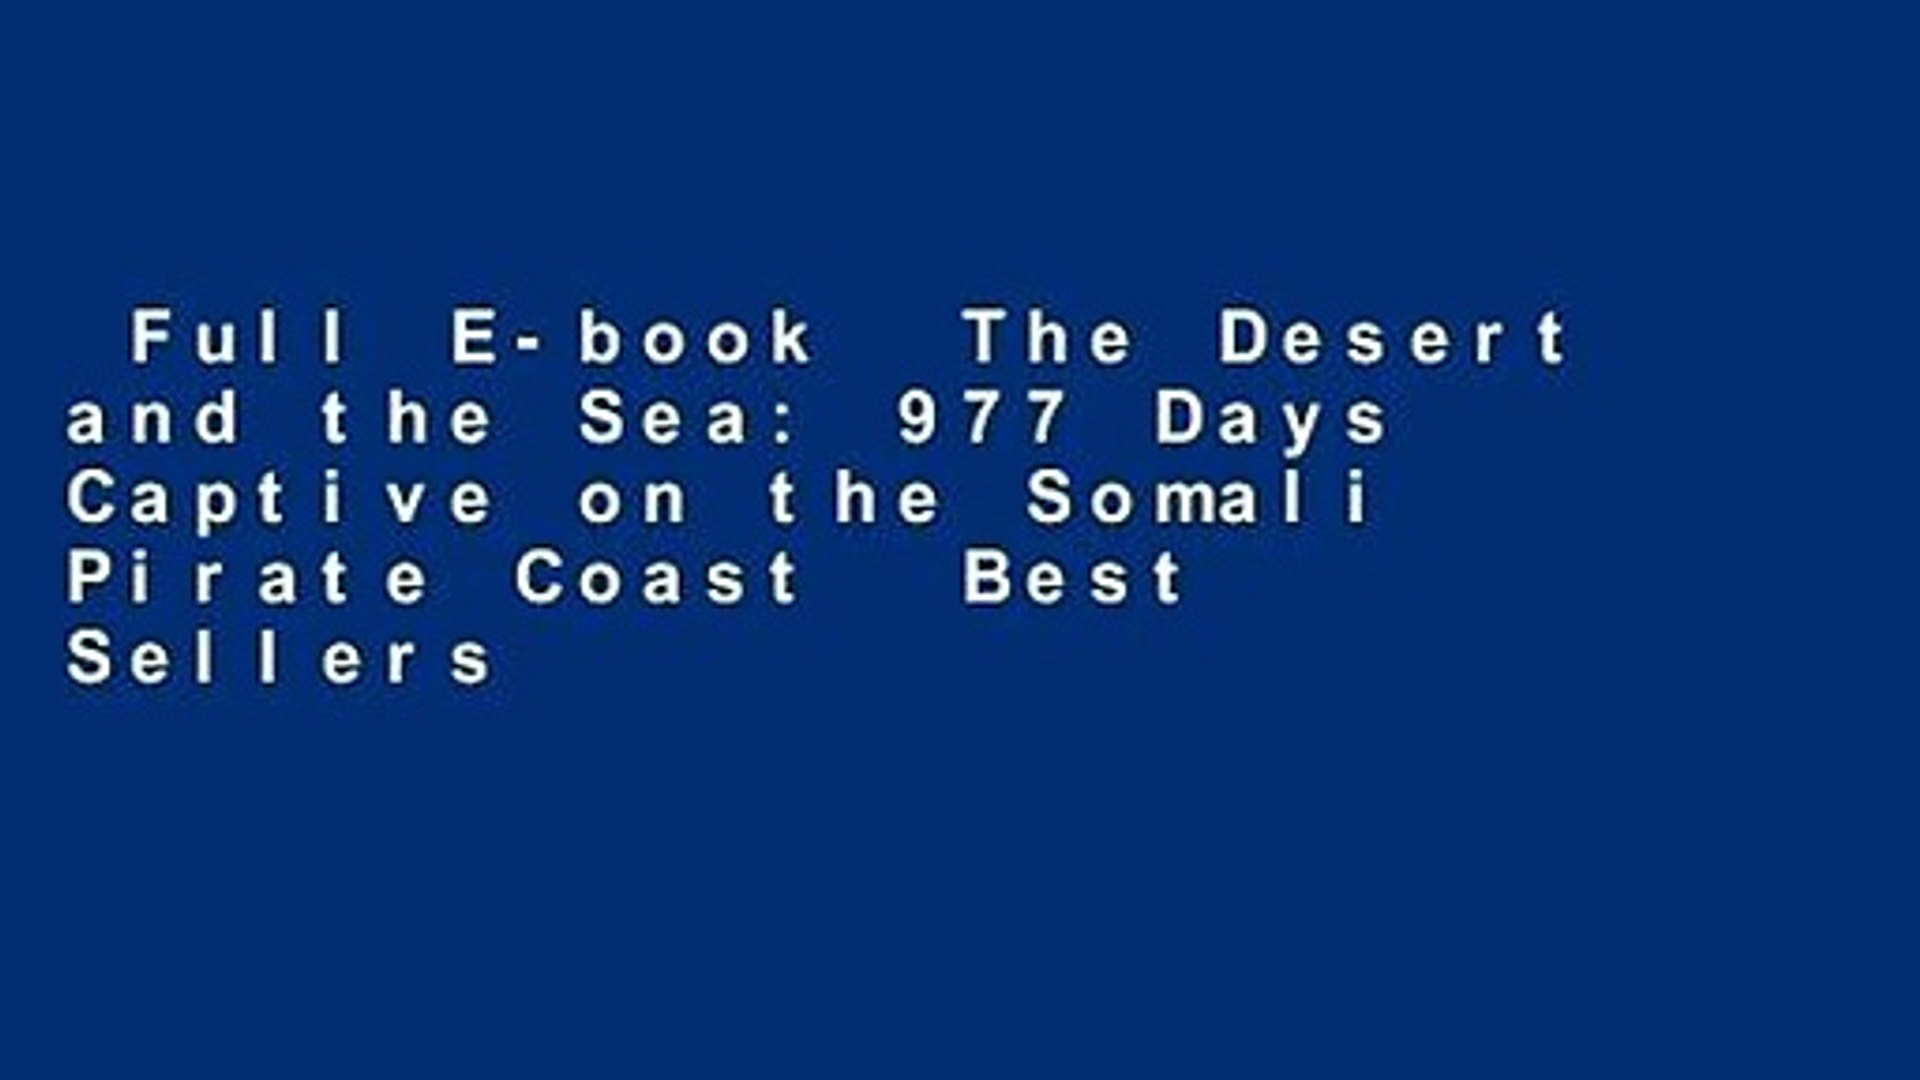 Full E-book  The Desert and the Sea: 977 Days Captive on the Somali Pirate Coast  Best Sellers